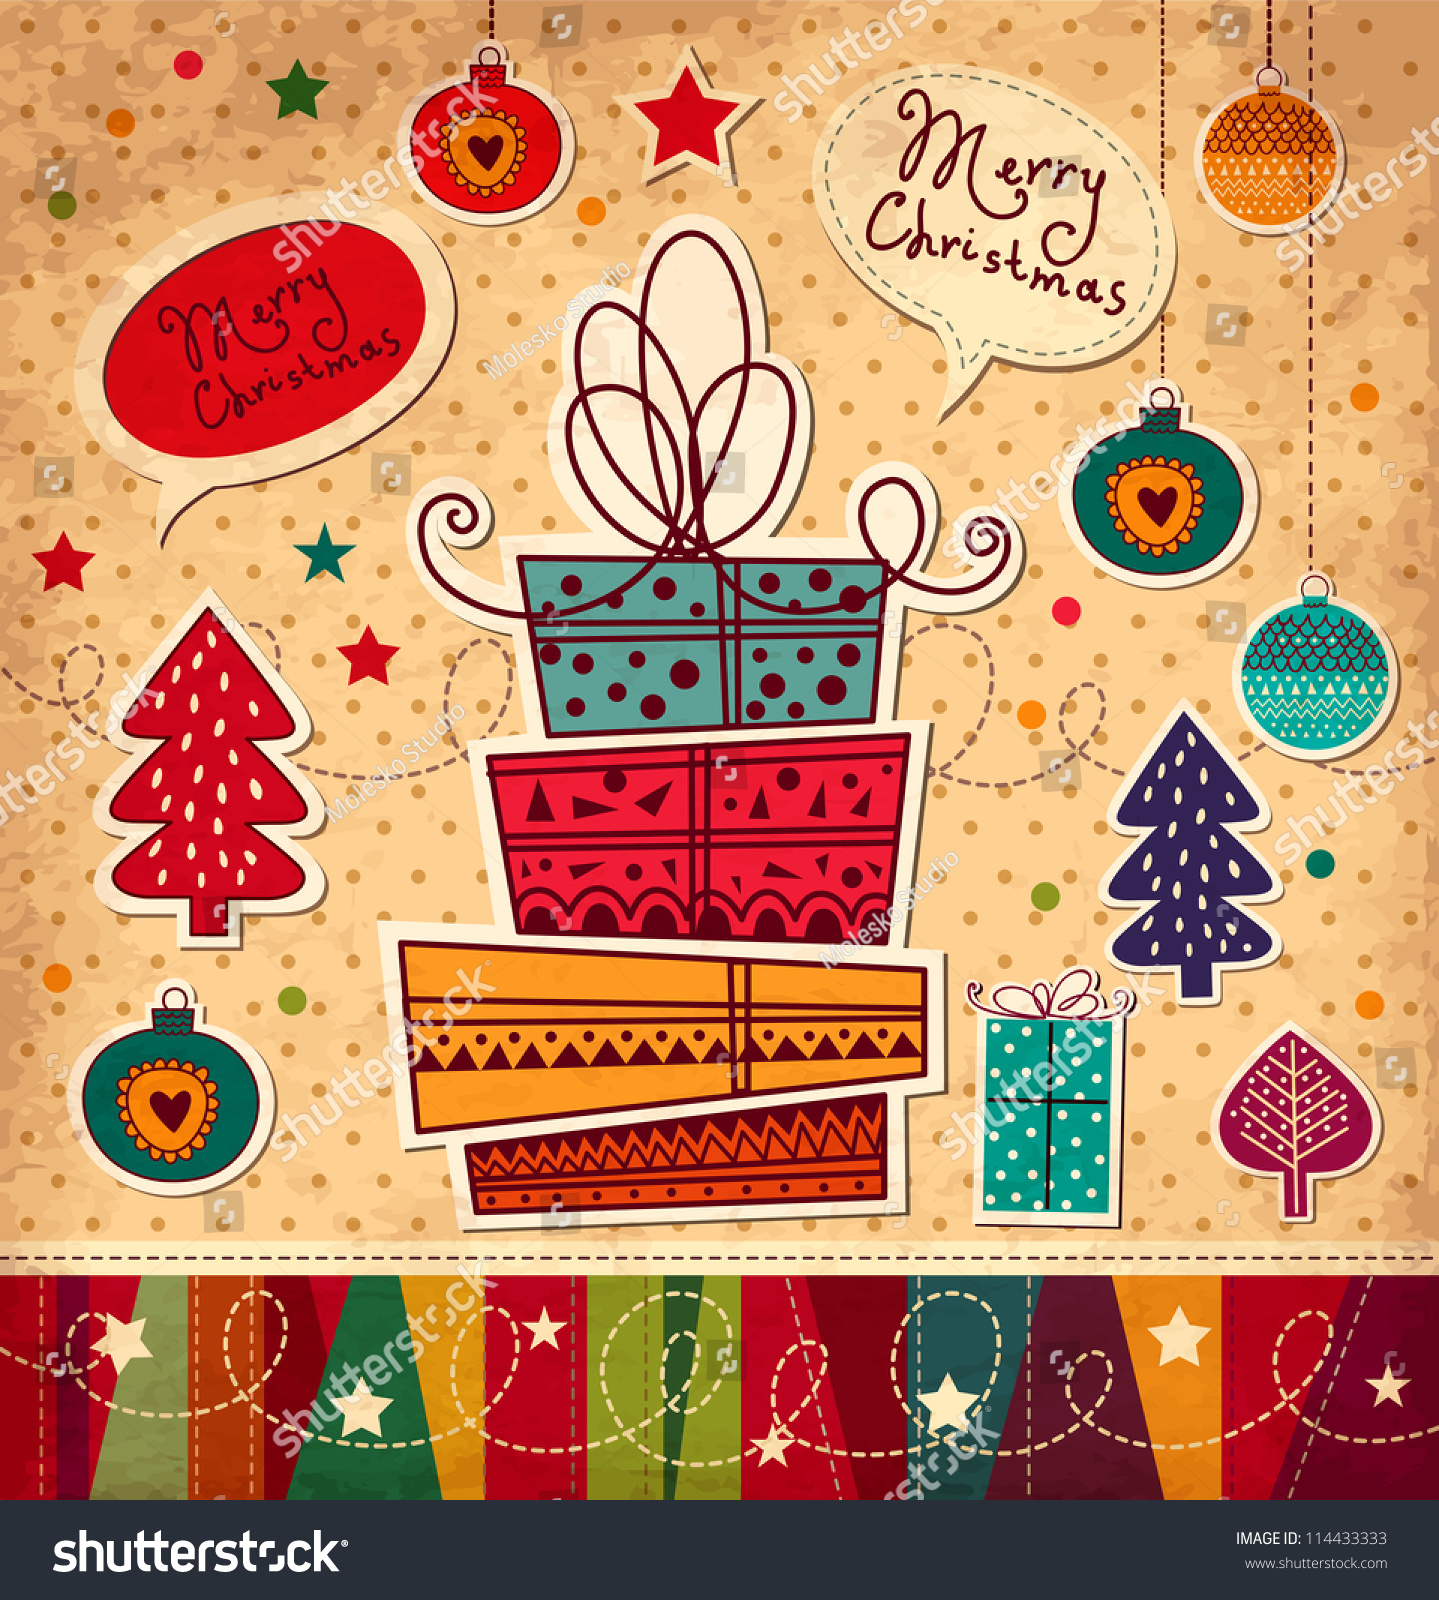 Vintage Christmas Card Gift Boxes Stock Vector (Royalty Free ...